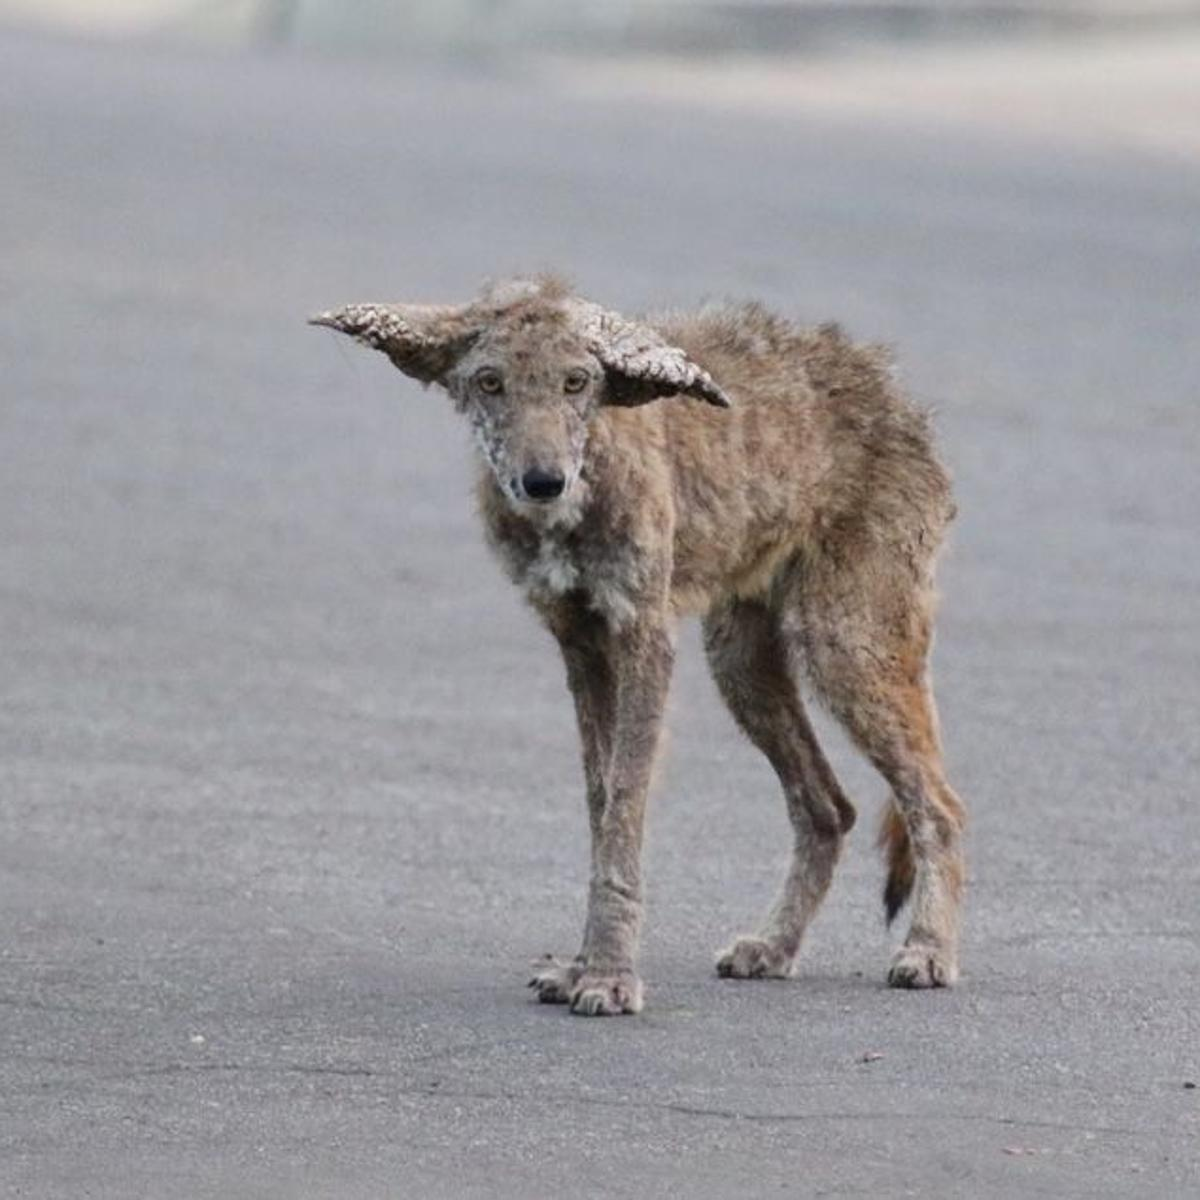 Coyote with Severe Mange